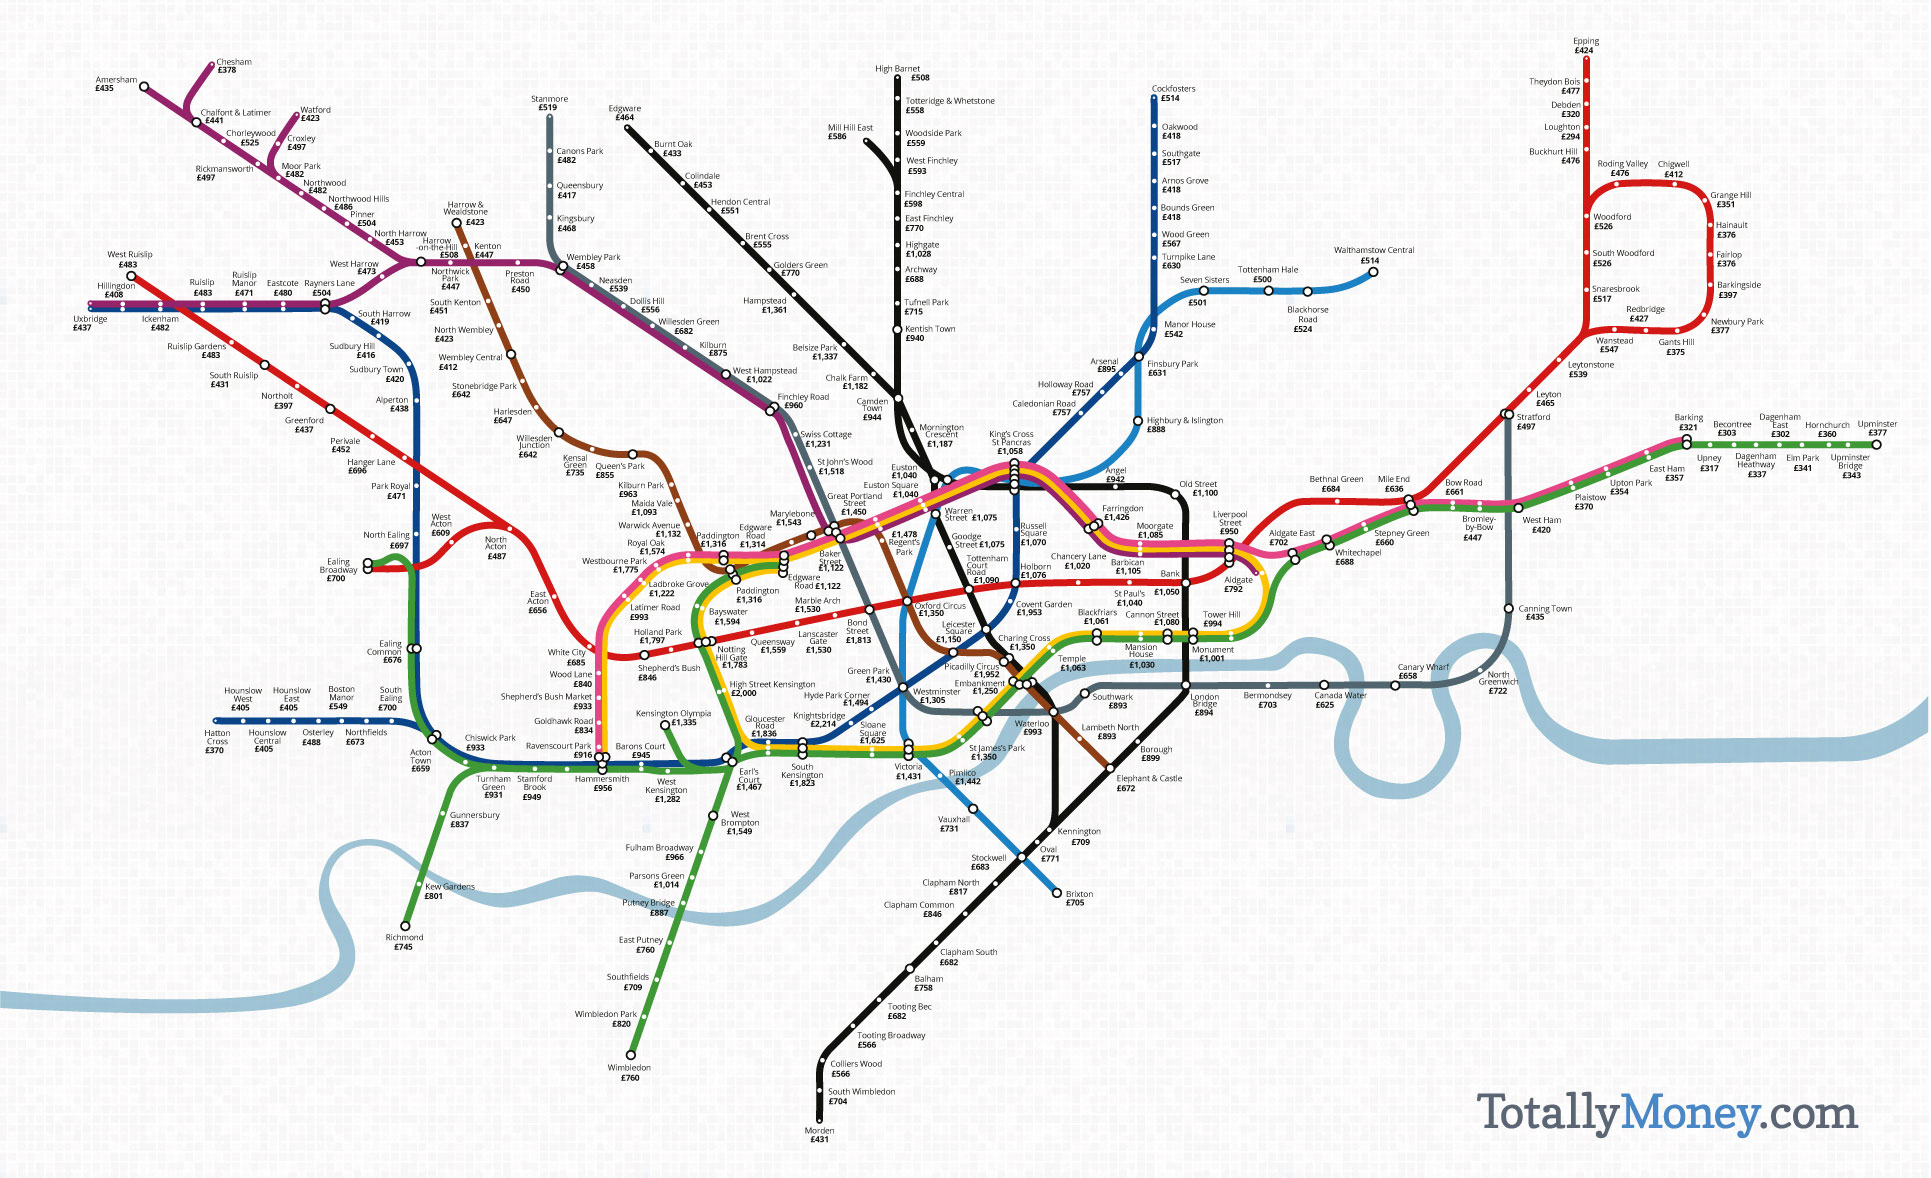 London Underground Map Shows The Price Per Square Foot Of Property